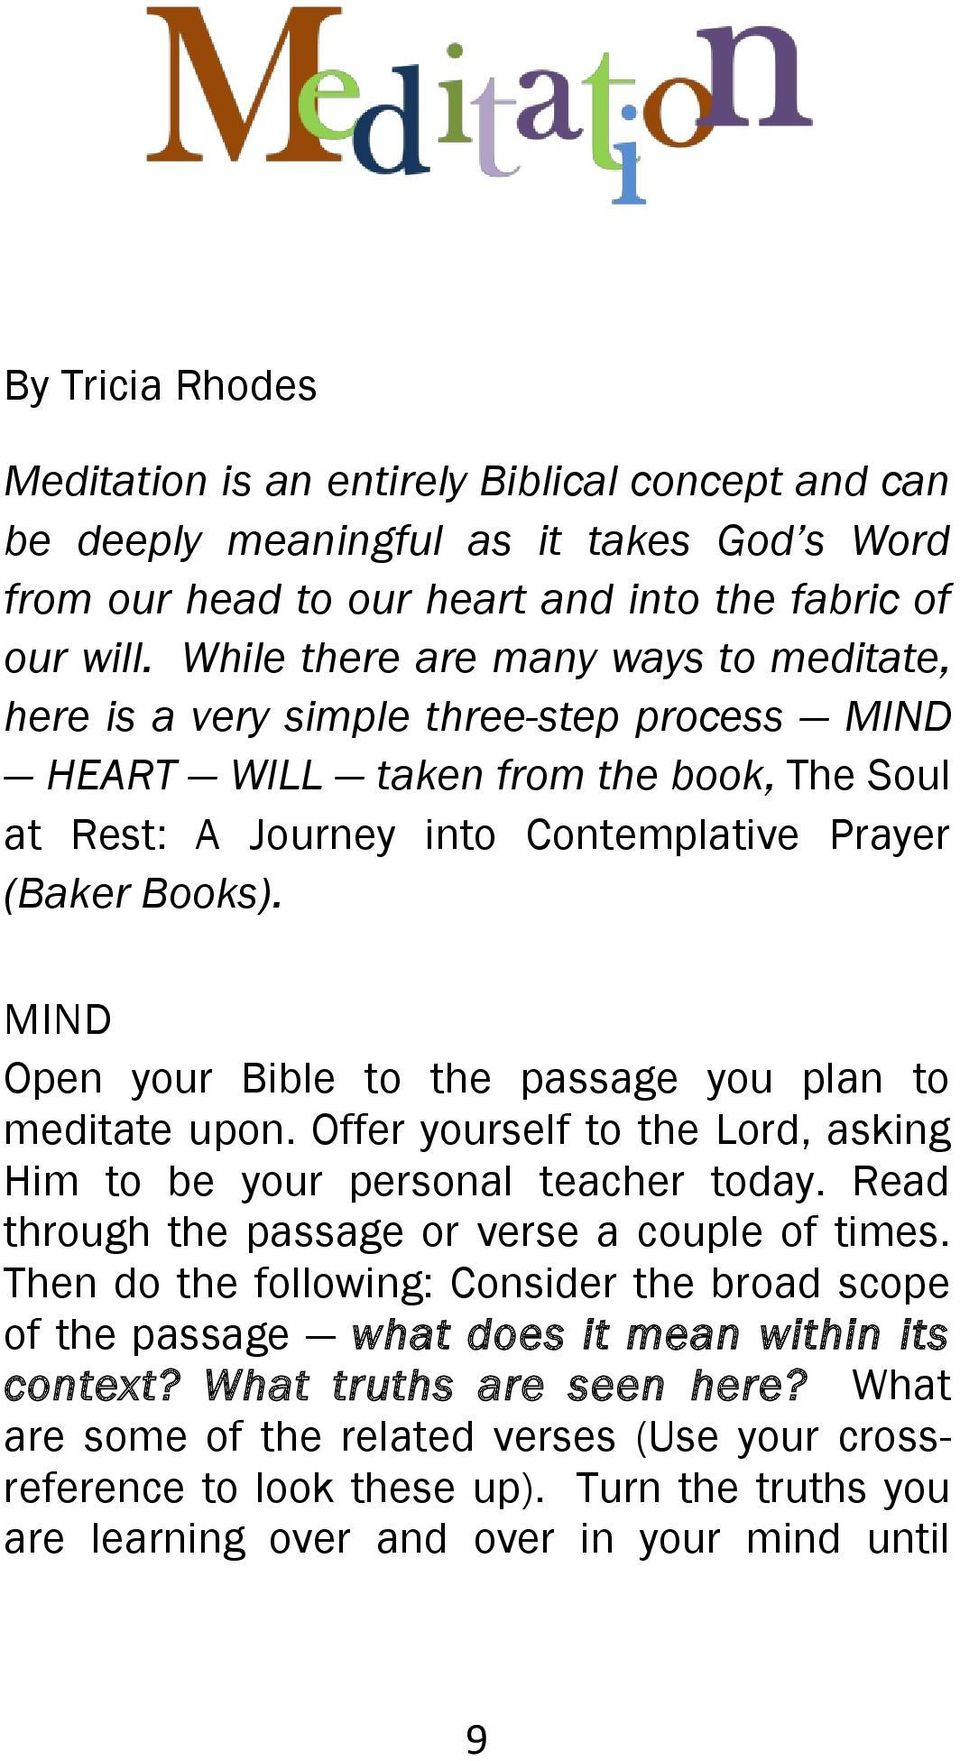 MIND Open your Bible to the passage you plan to meditate upon. Offer yourself to the Lord, asking Him to be your personal teacher today. Read through the passage or verse a couple of times.